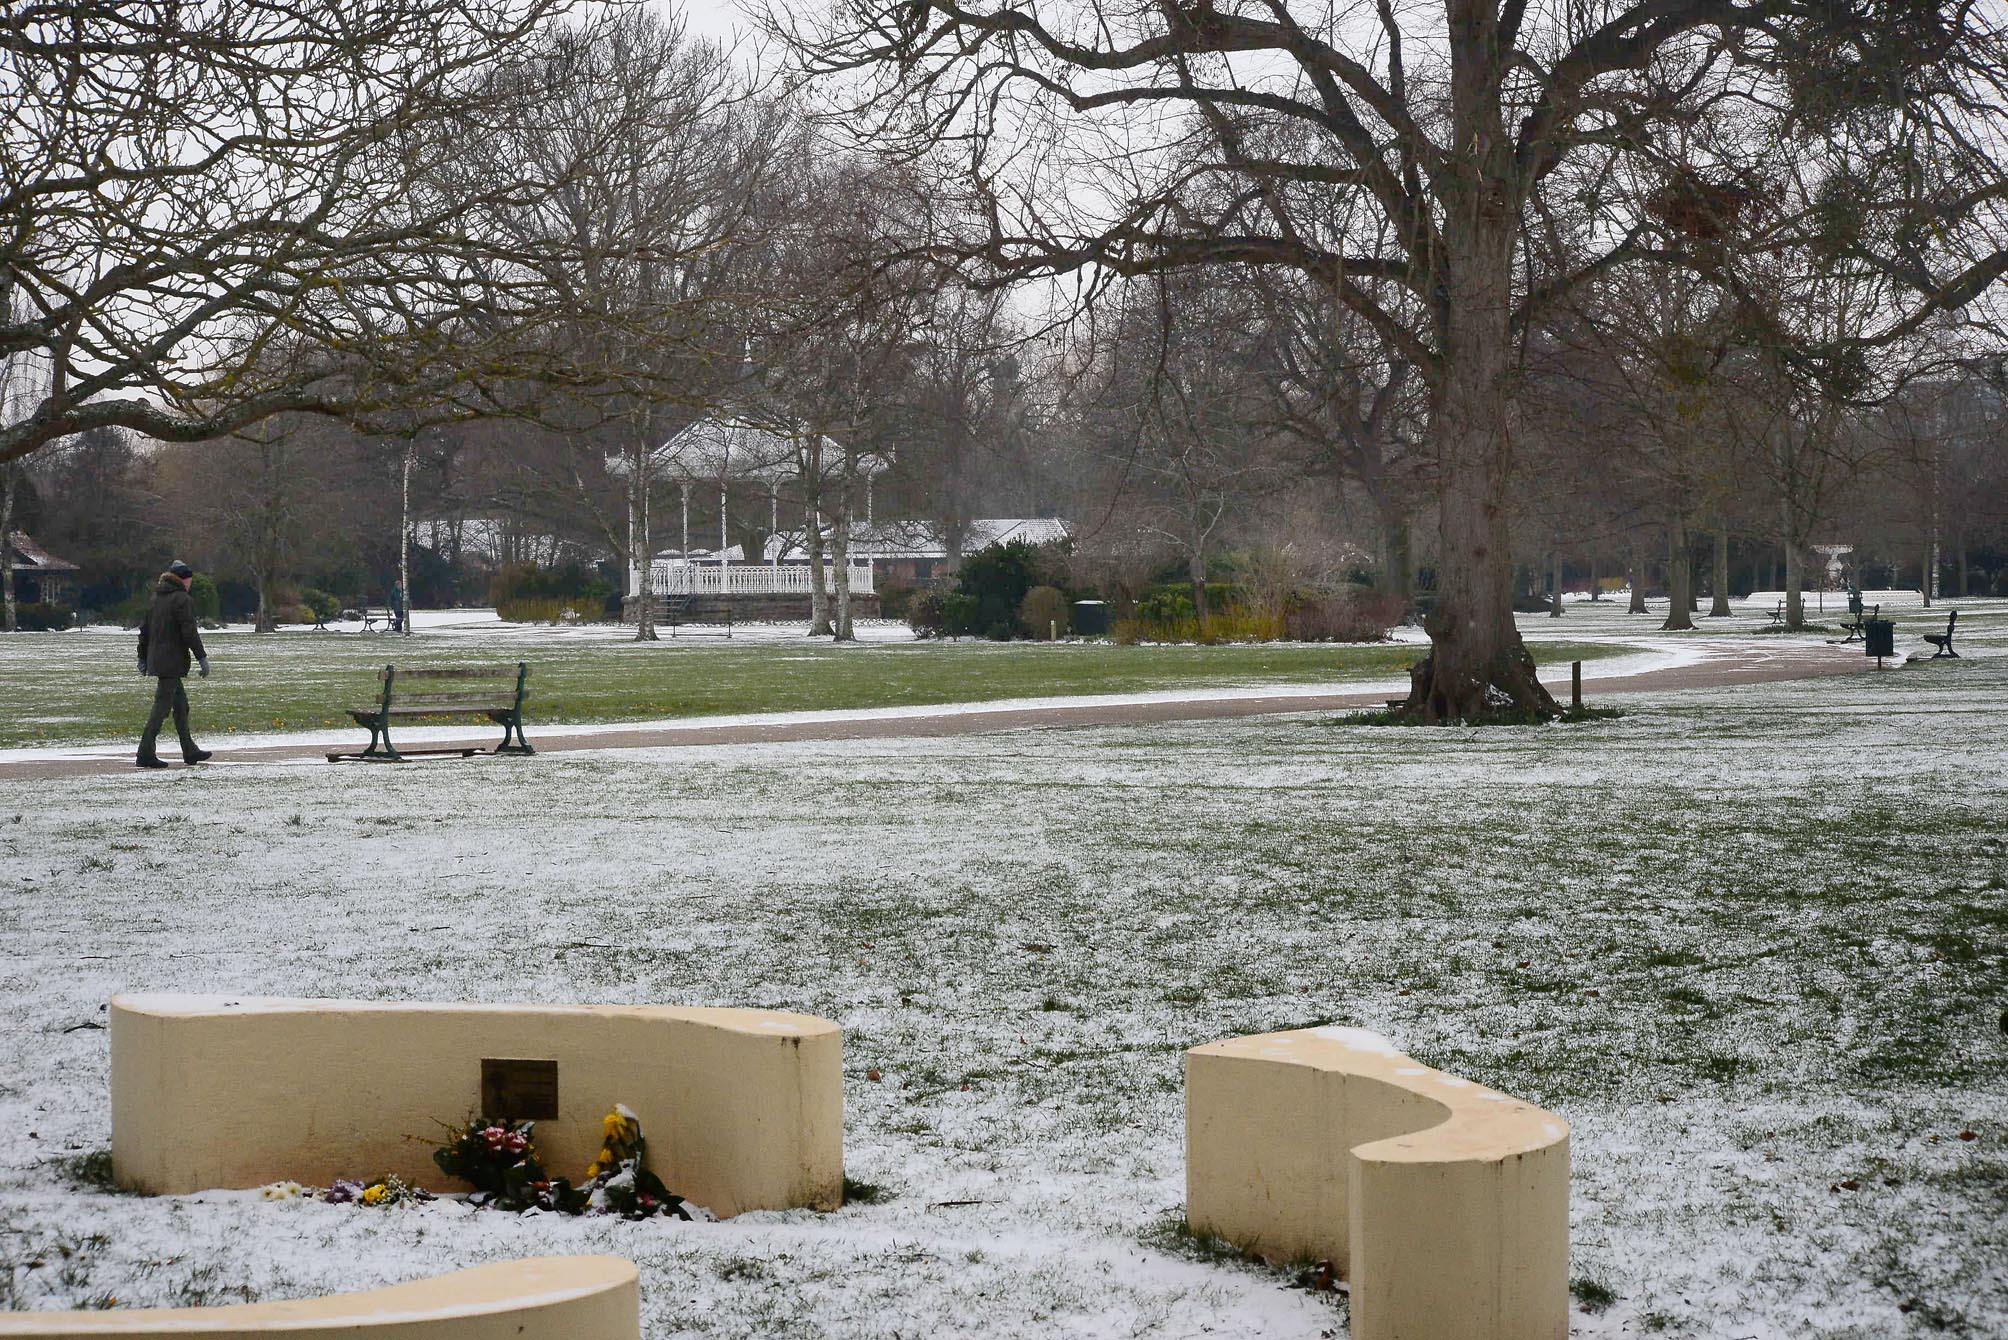 Weather warning in place as Somerset braces itself for more snow and icy conditions